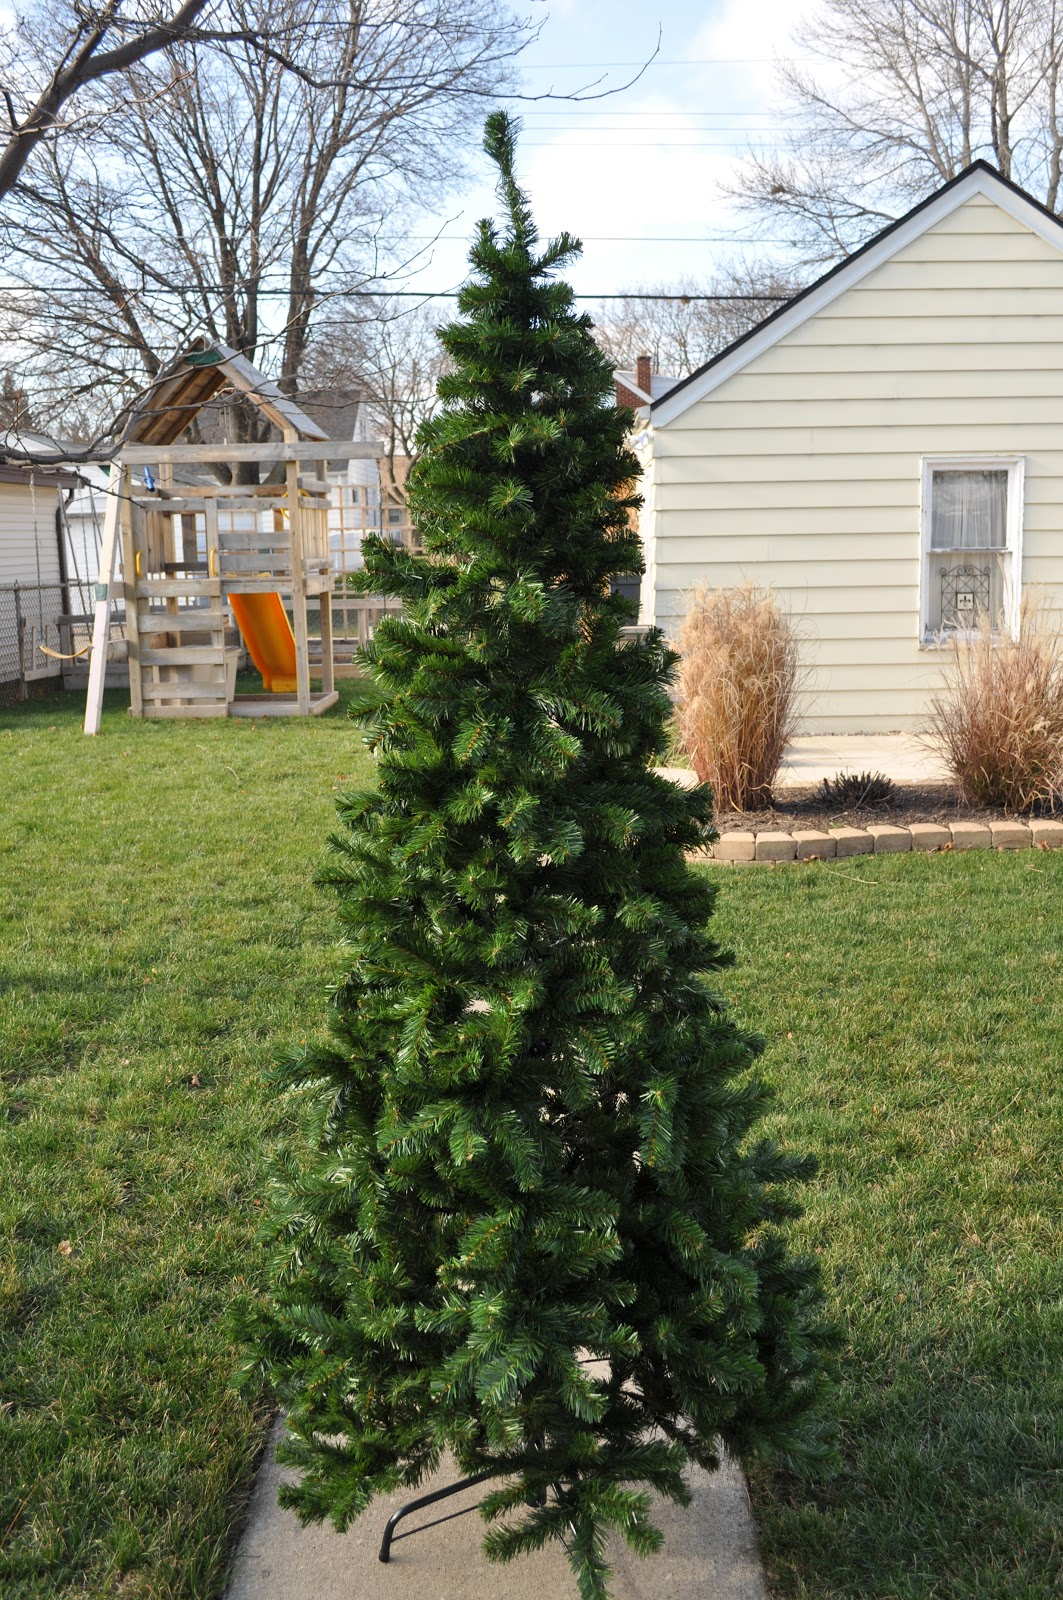 Just So Lovely: A Flocked Christmas Tree